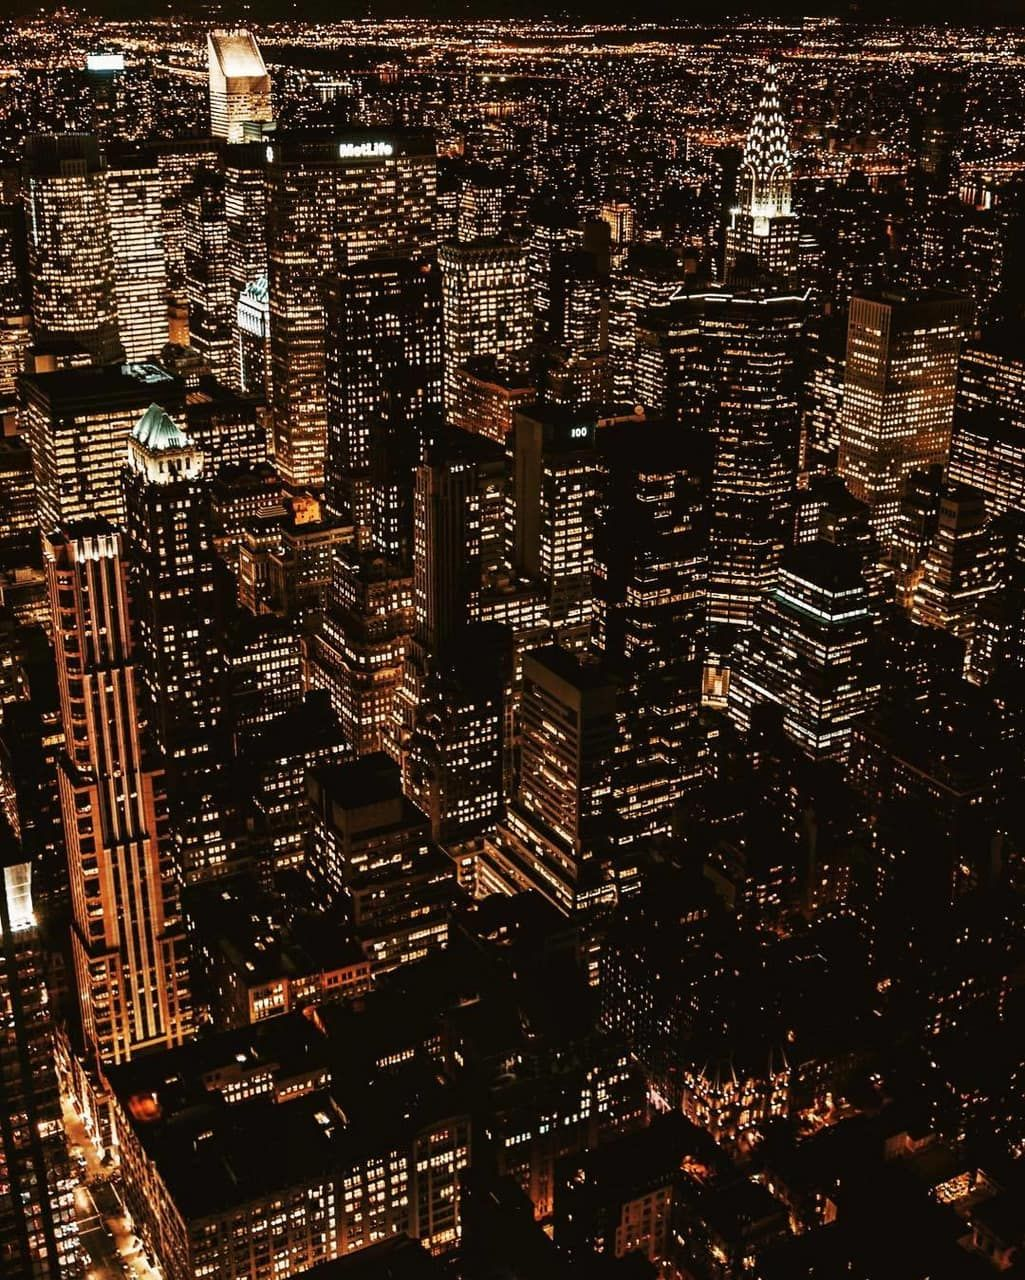 Shared By H E A V E N L Y Find Images And Videos About Photography Travel And Adventure On We Heart It The App To Get L City City Aesthetic New York Travel